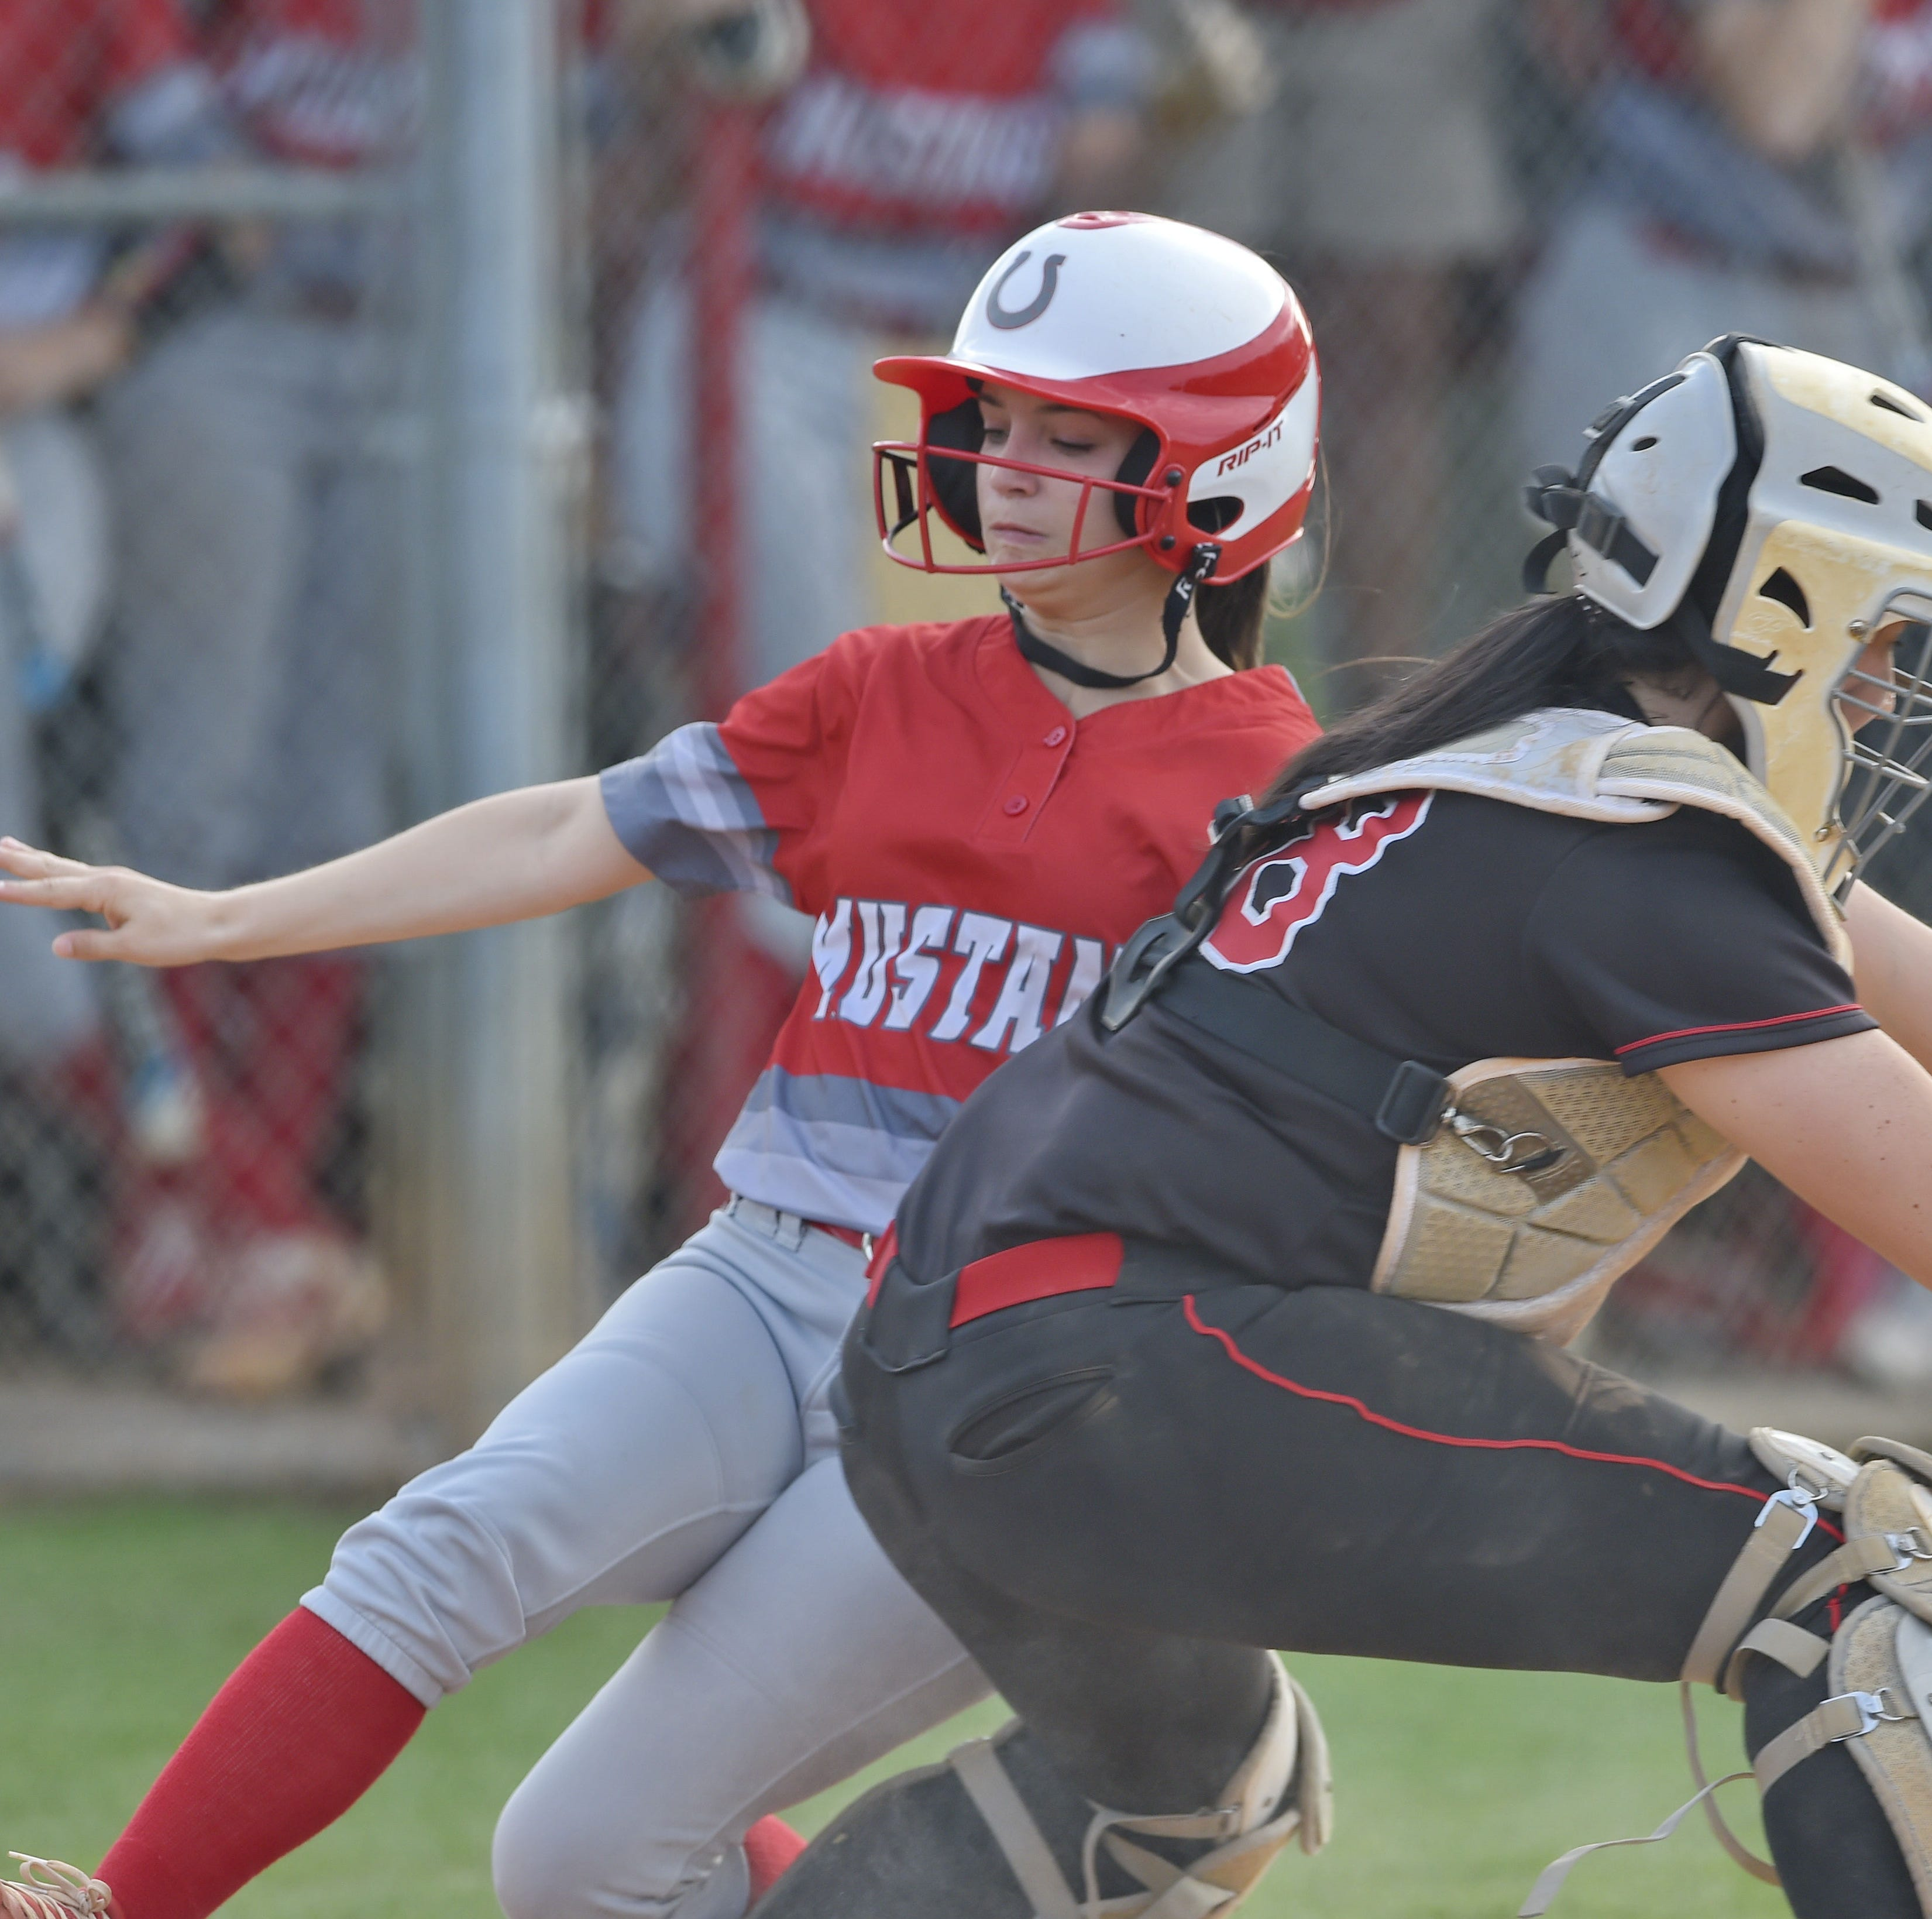 Palmetto falls to Hartsville in AAAA softball championship